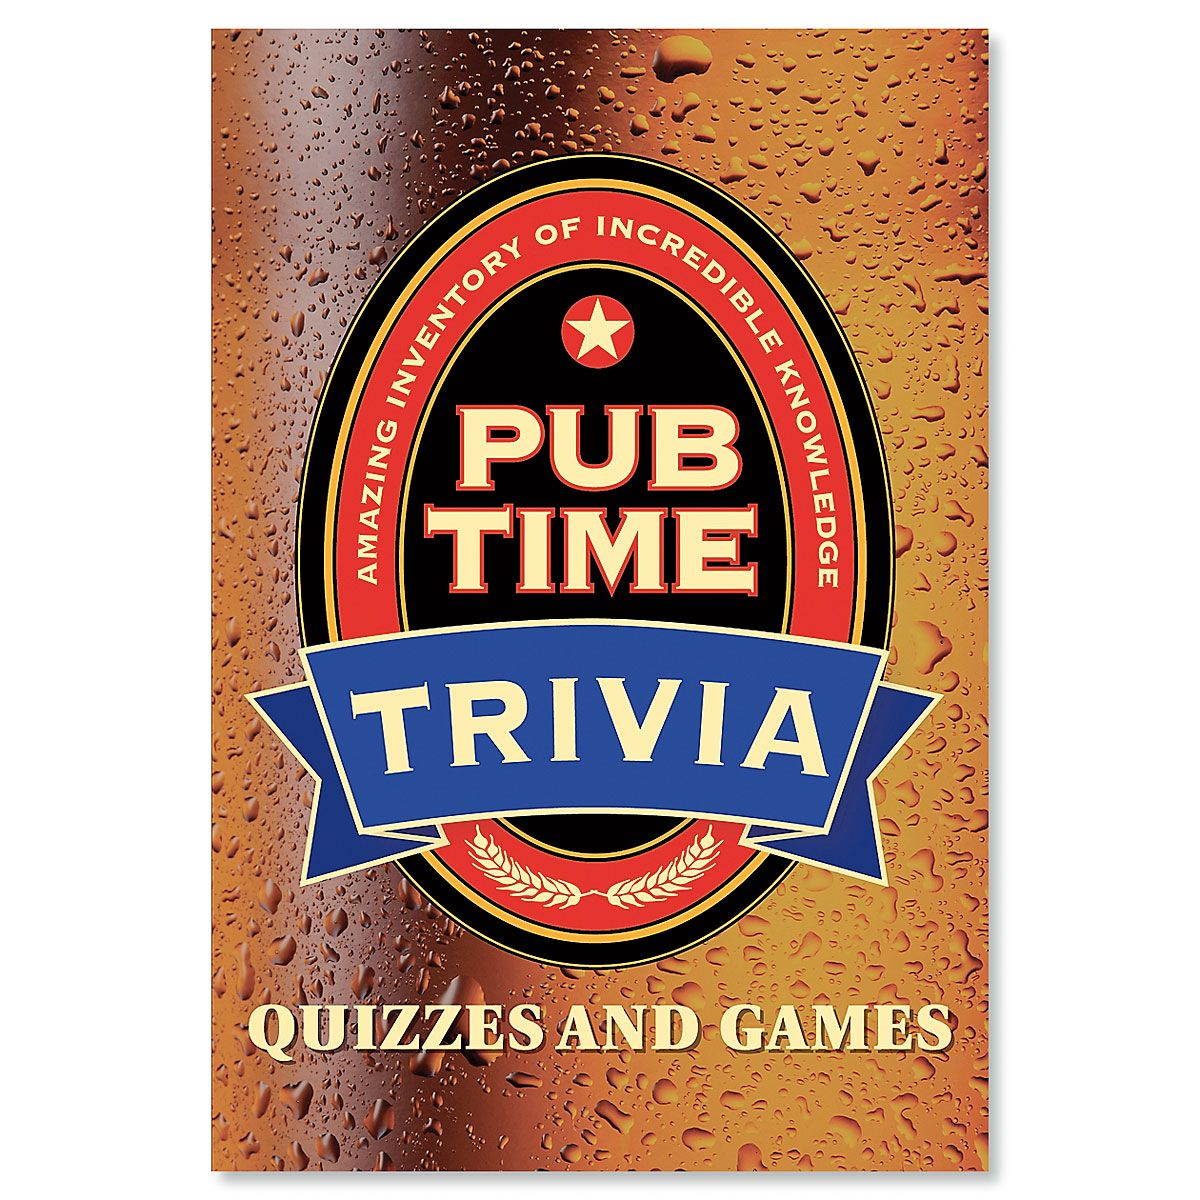 Pub Time Trivia Book